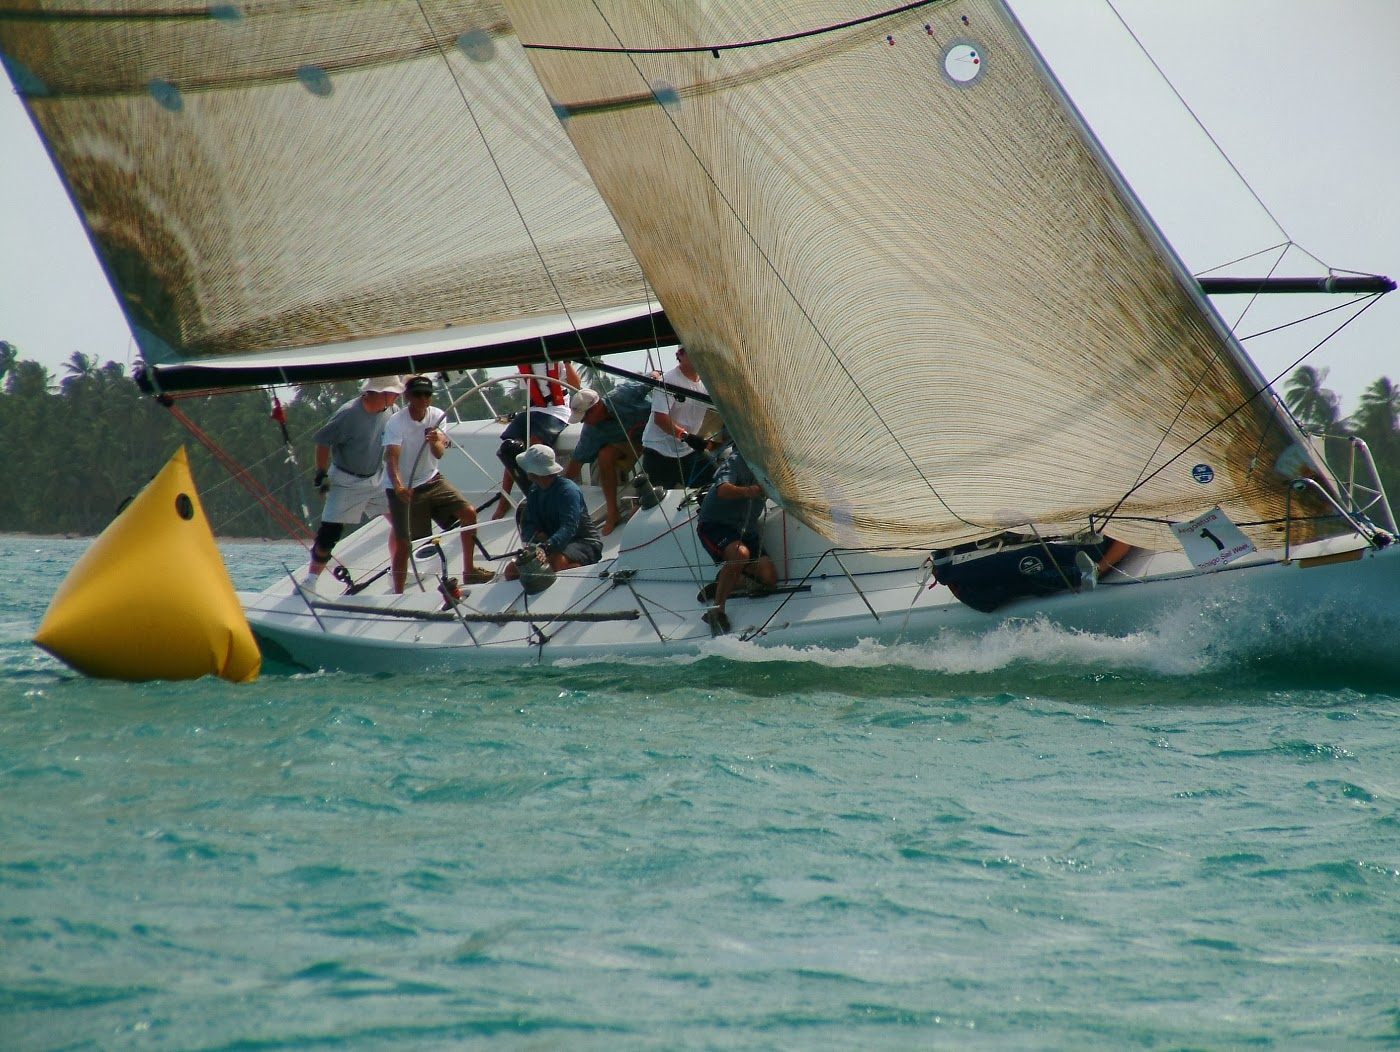 Yacht racing photography Pushing to the limits